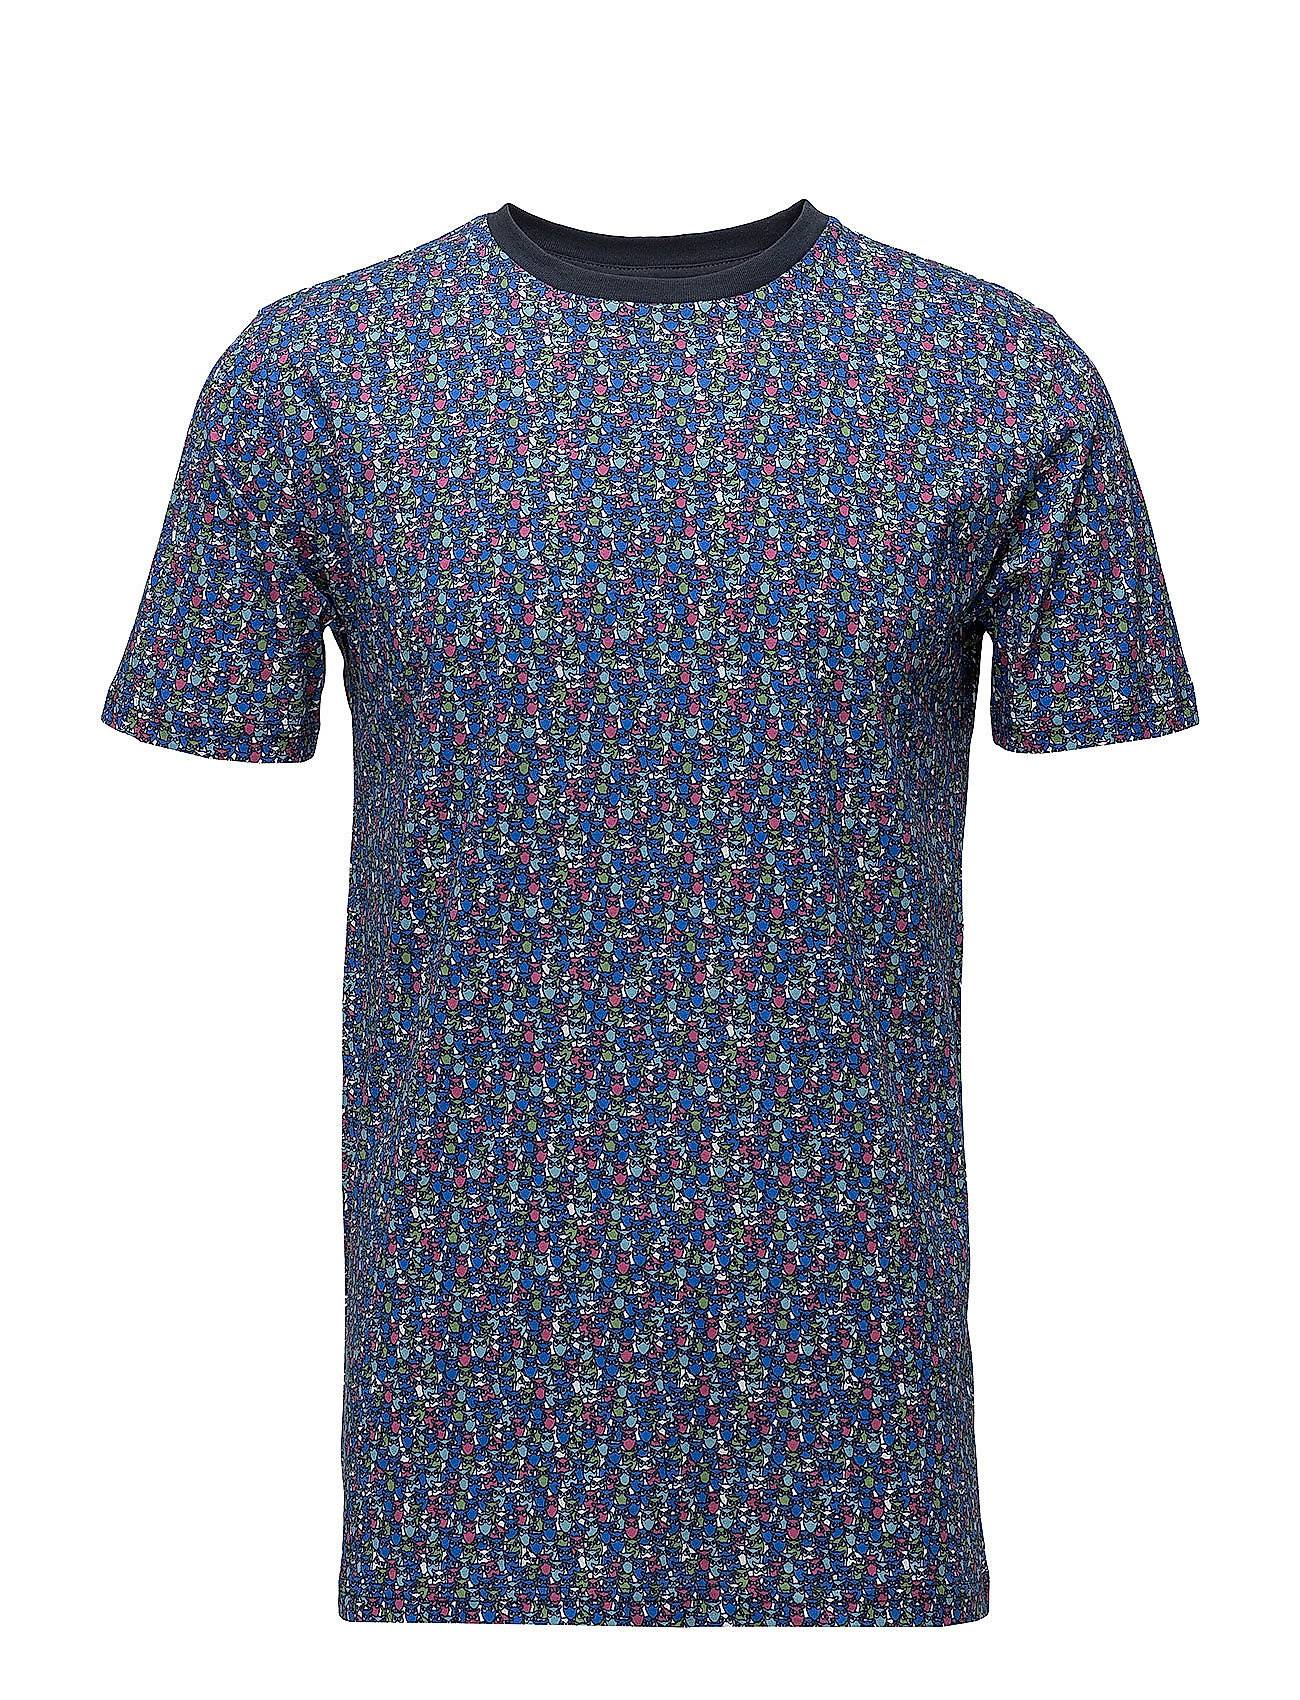 Knowledge Cotton Apparel T-Shirt With All Over Owl Print - Gots